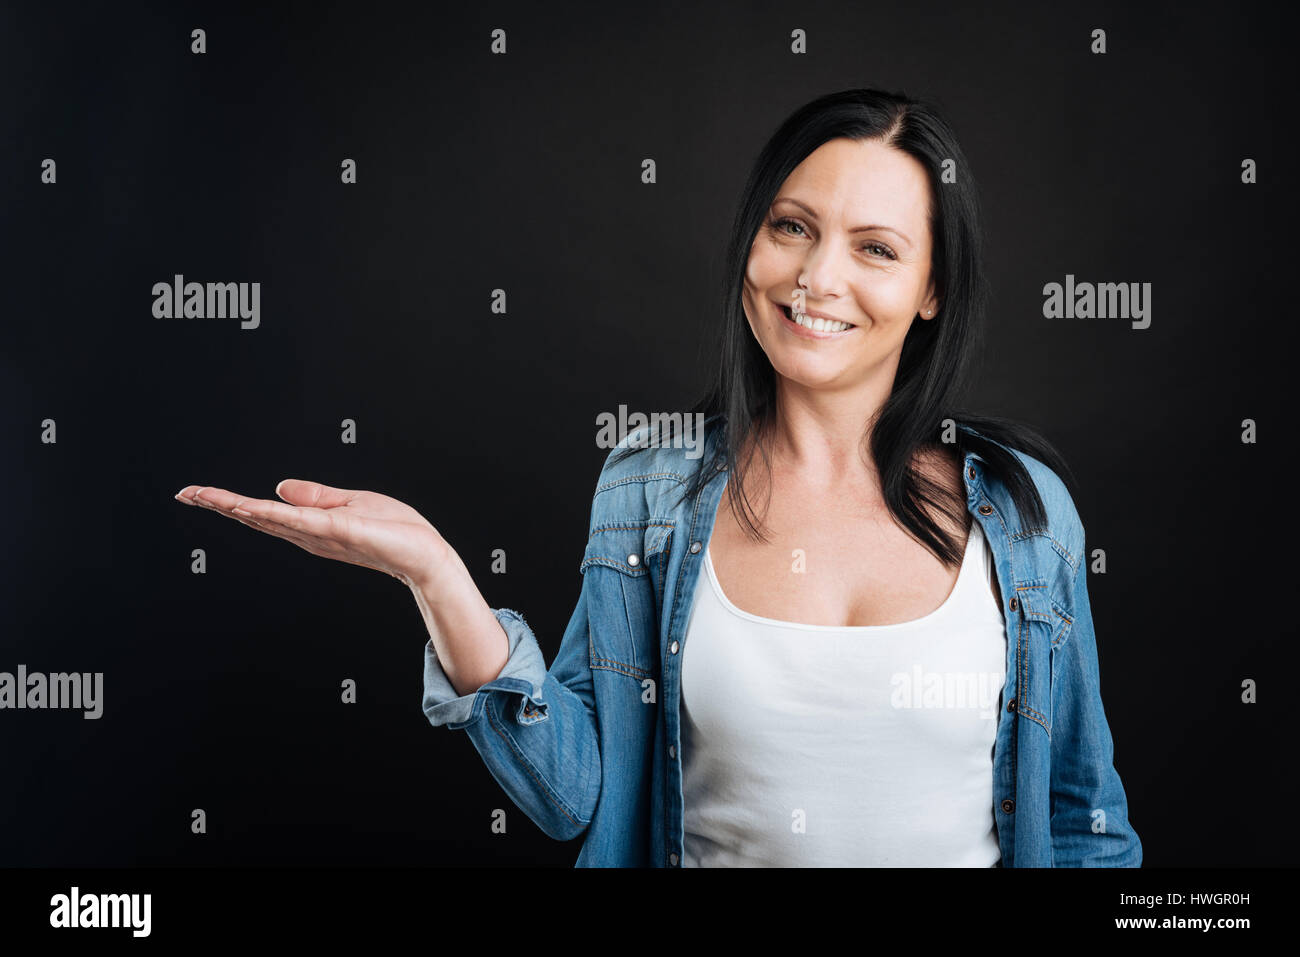 Attractive female keeping her palm of right hand up - Stock Image